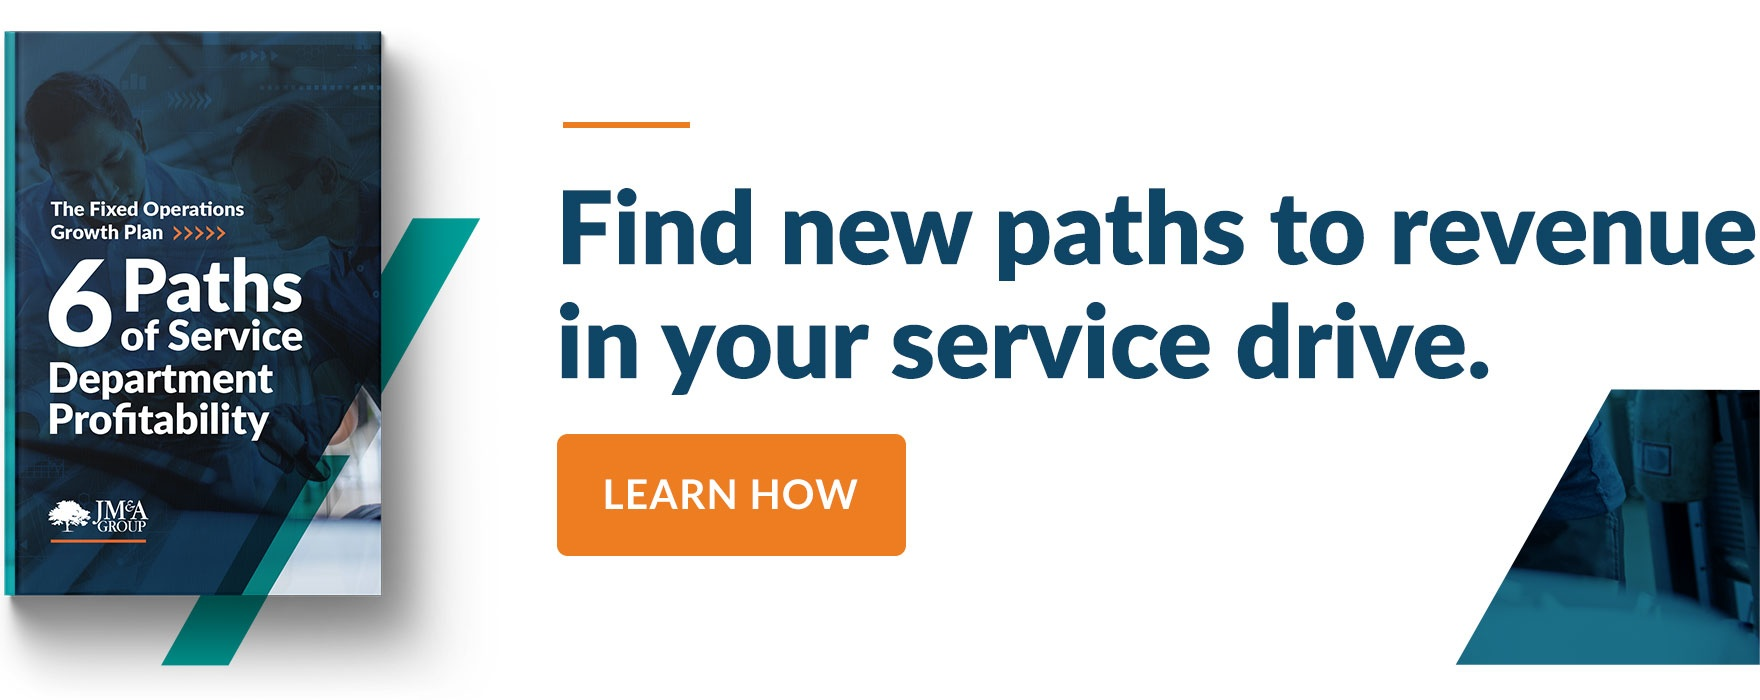 Find new paths to revenue in your service drive. Learn How.